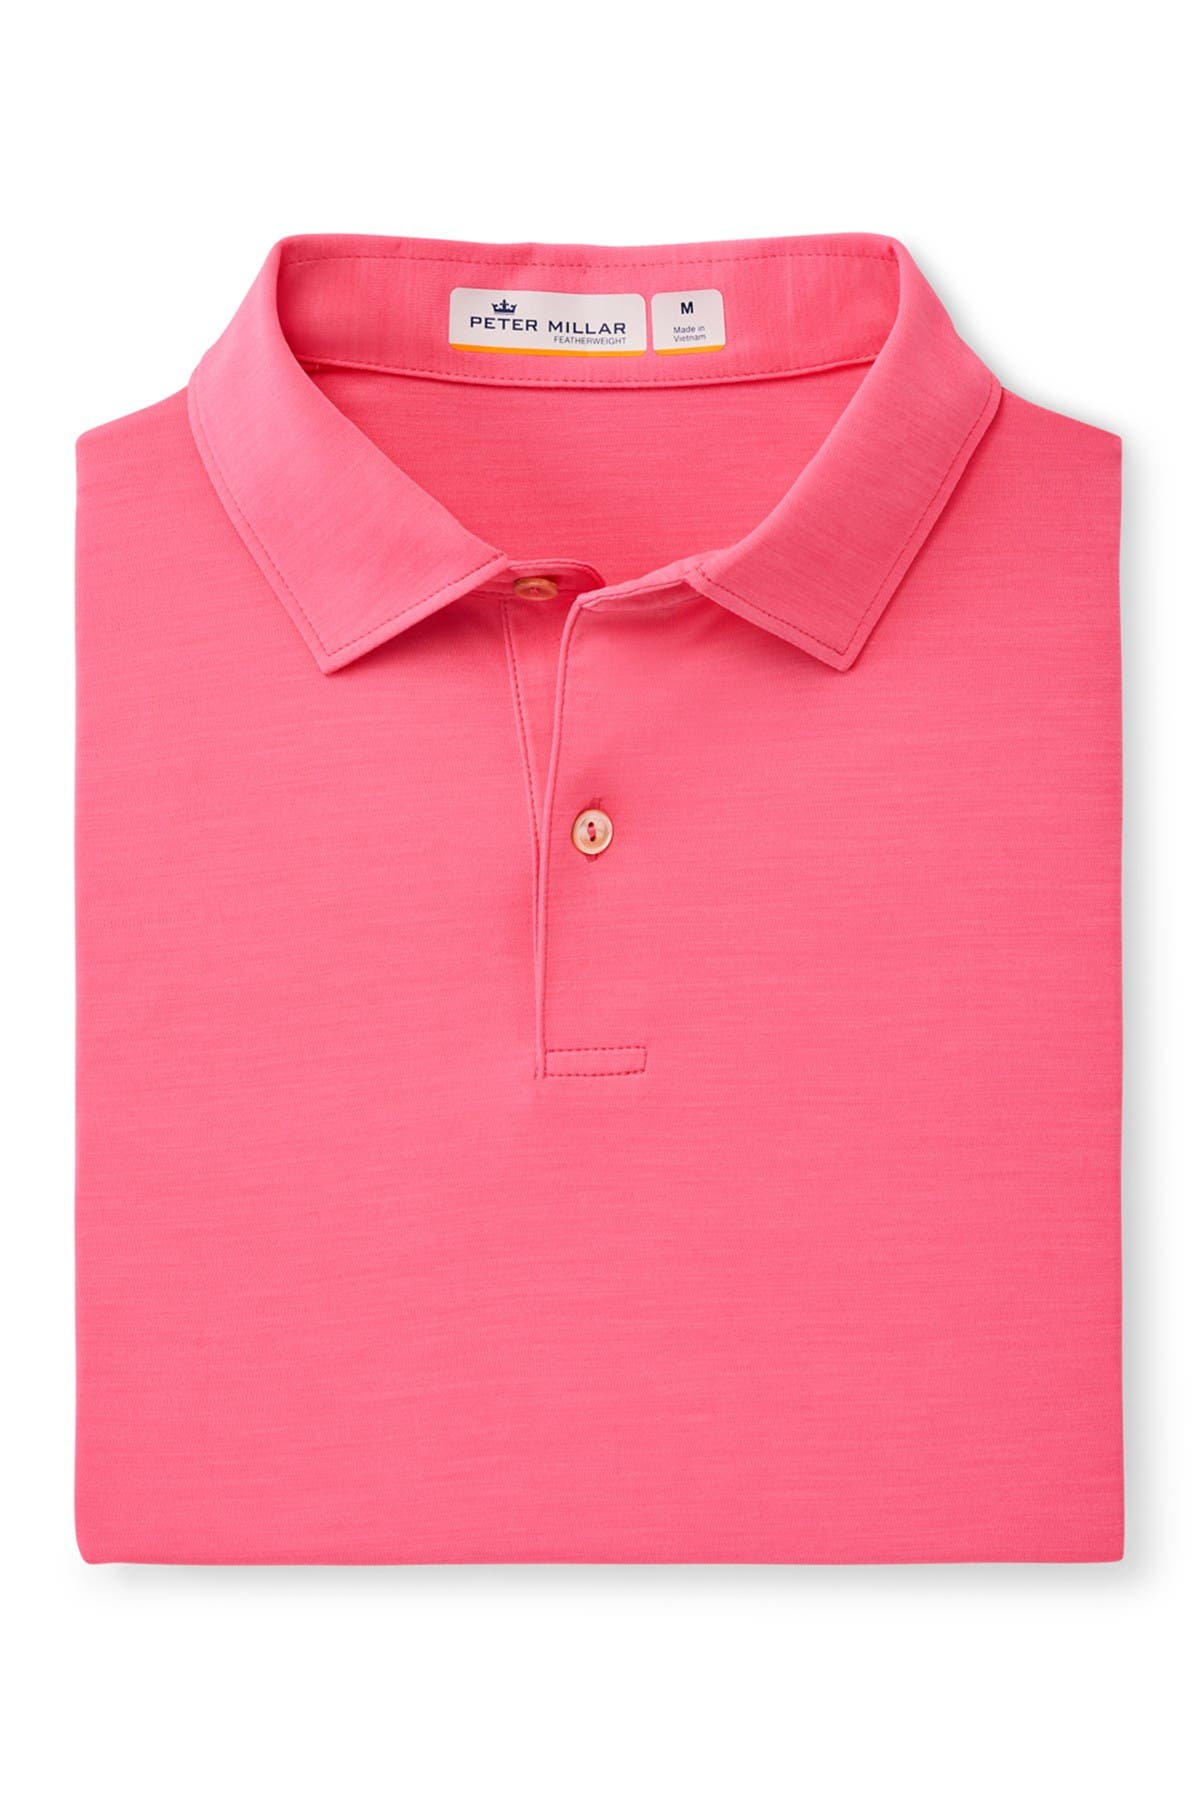 Image of Peter Millar Solid Knit Polo